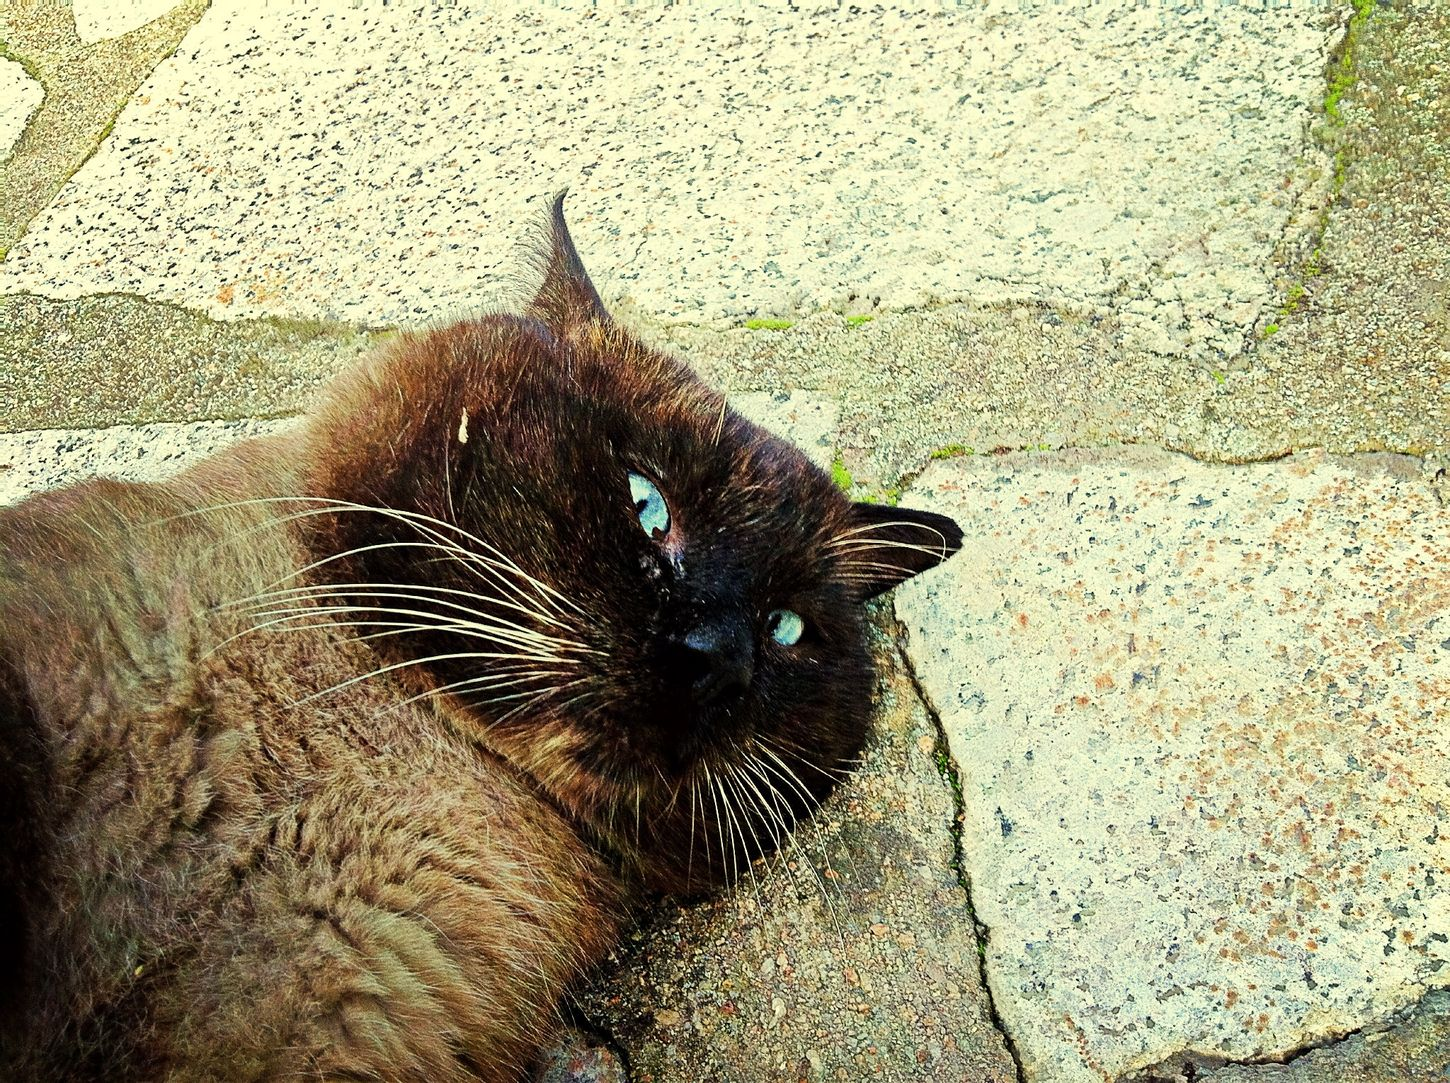 Piccolo the cat Catoftheday cat eyes First Eyeem Photo